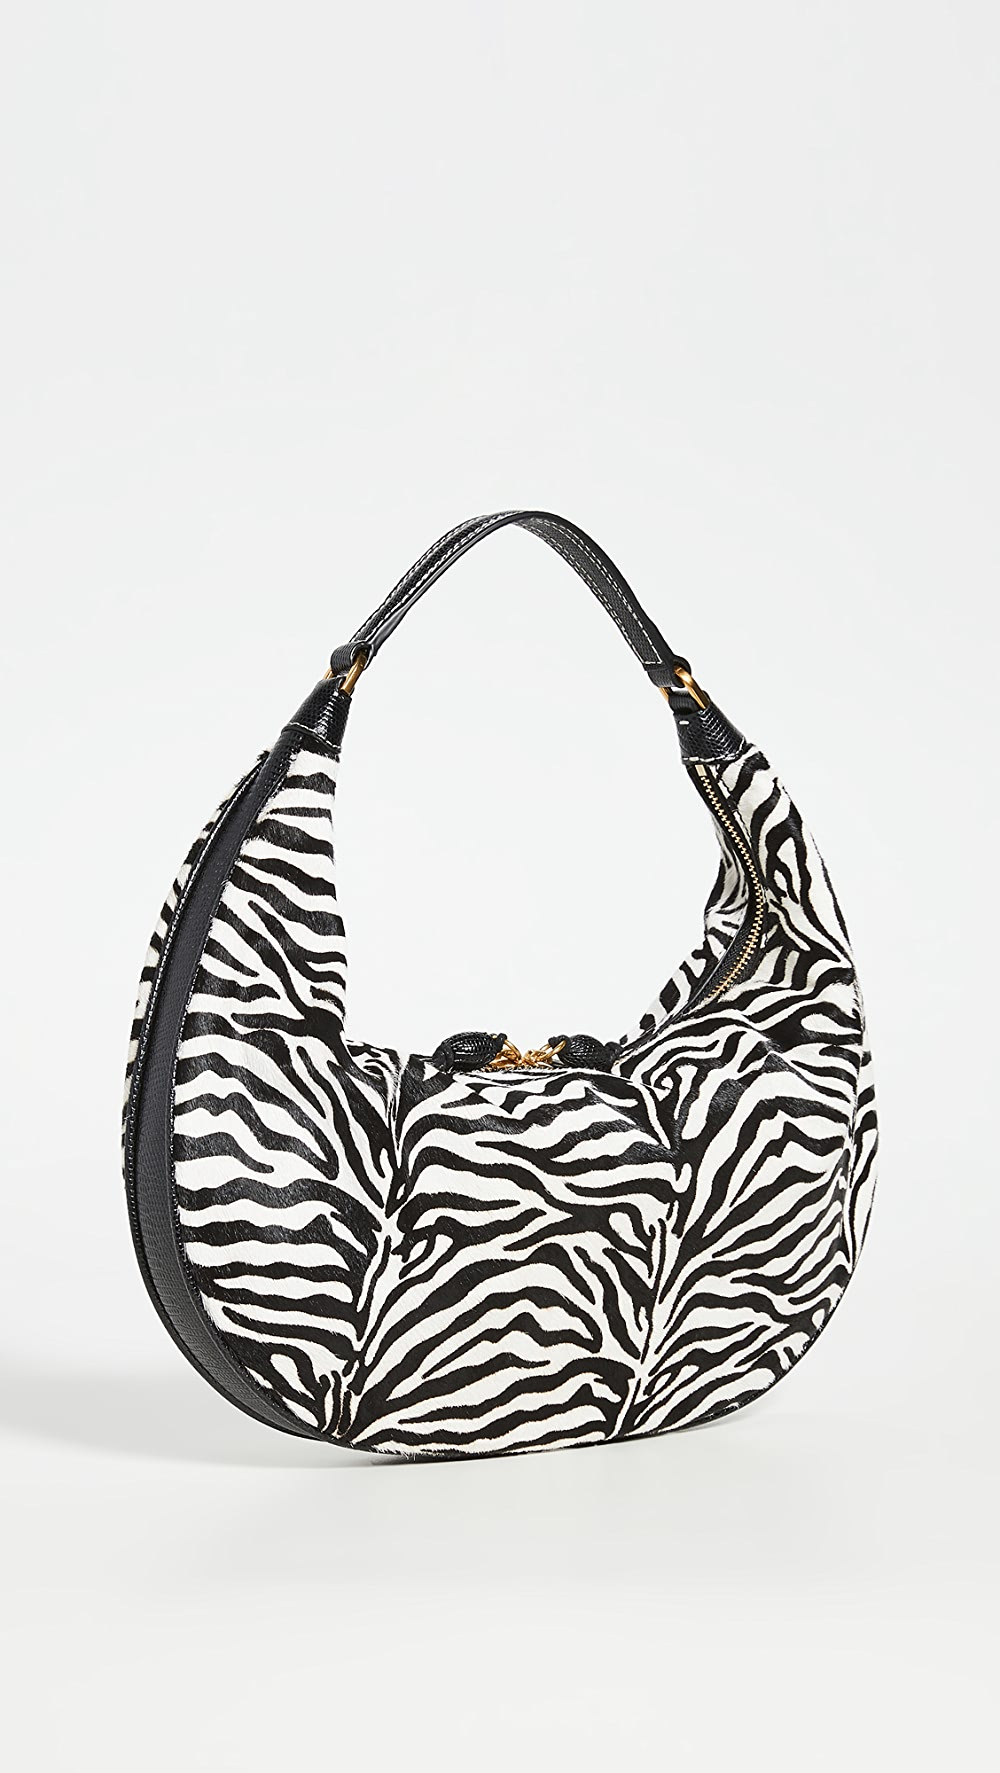 Reliable Staud - Sasha Bag Available In Various Designs And Specifications For Your Selection